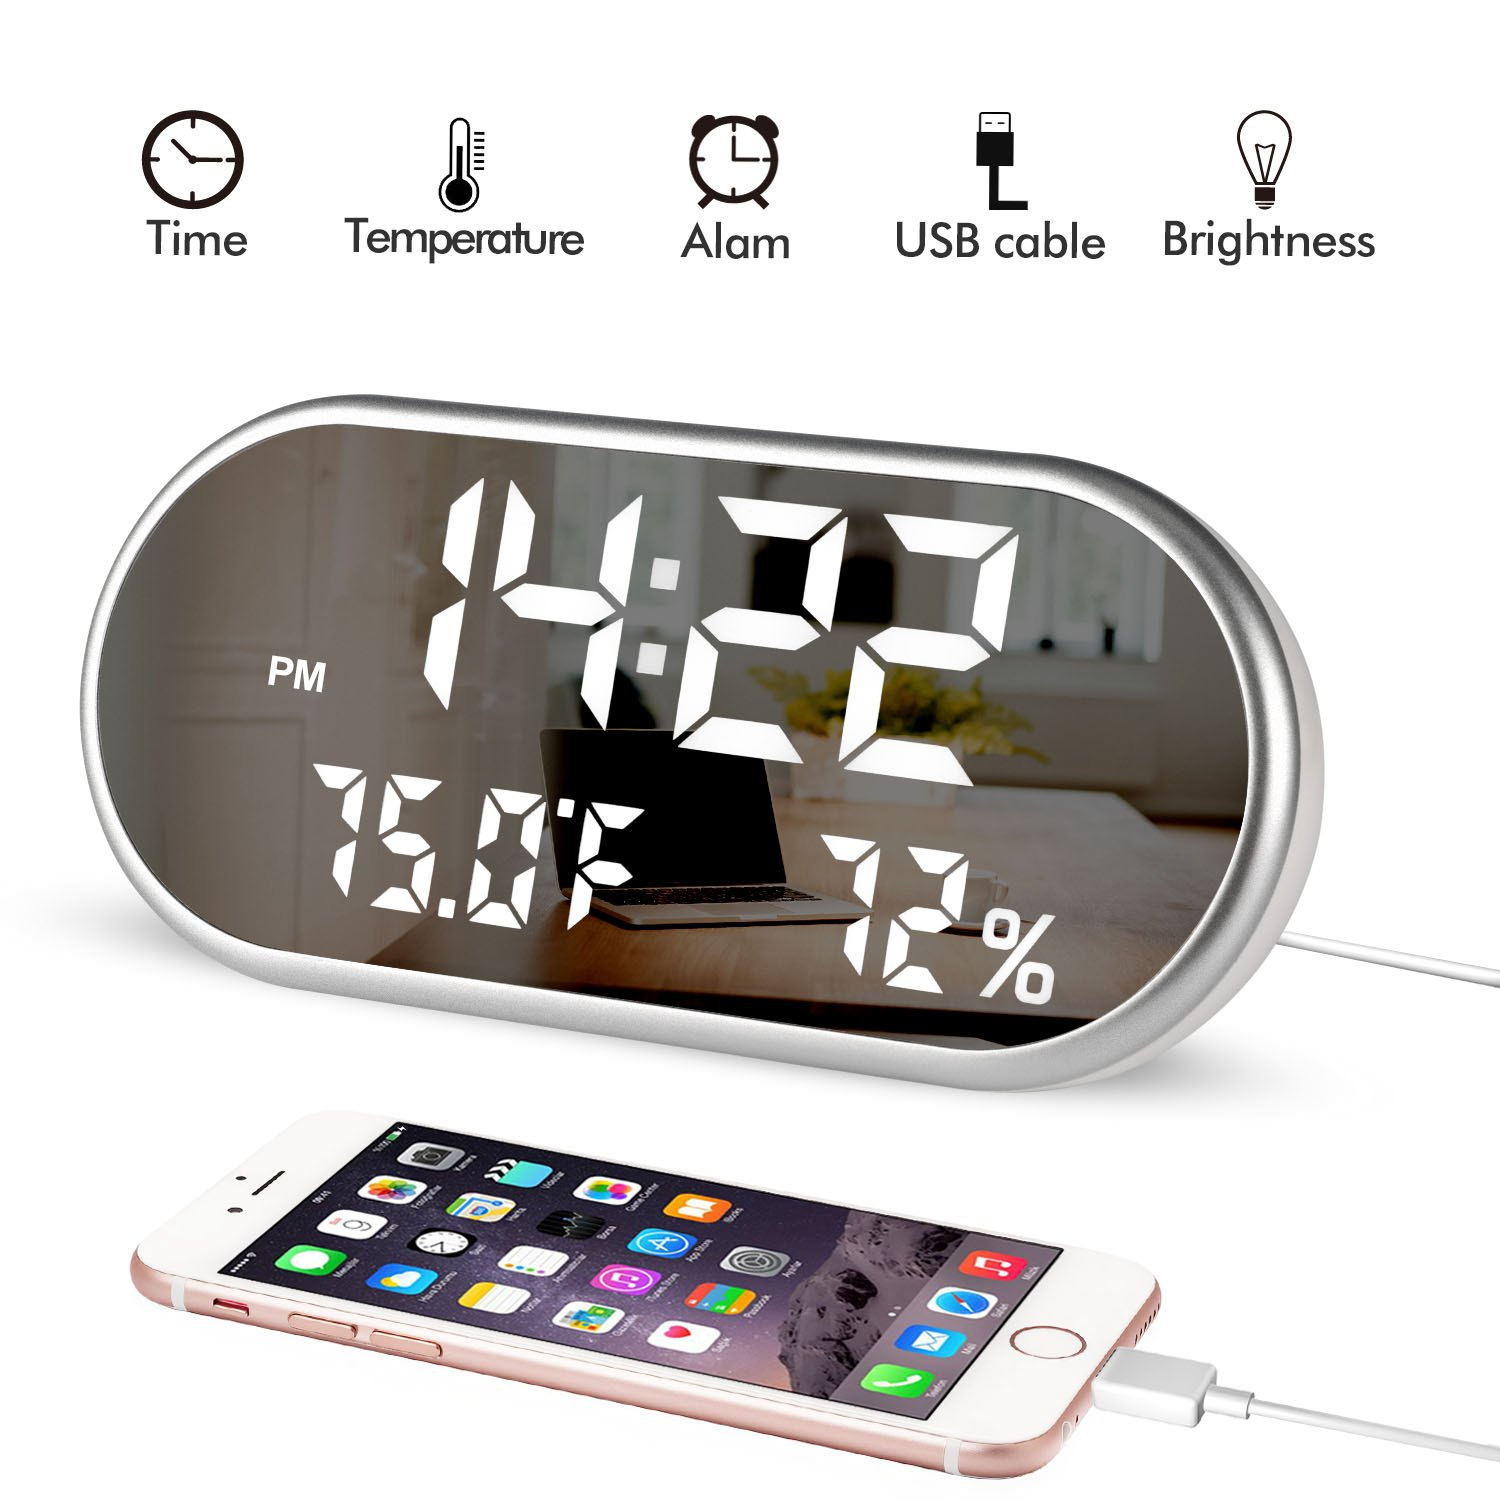 Digital Alarm Clock, Portable Mirror HD LED Display with Time/Humidity/Temperature/Display Function, 3 Brightness Adjustment, Dual USB Port Charging, Suitable for Bedroom, Office, Travel by AONOKOY